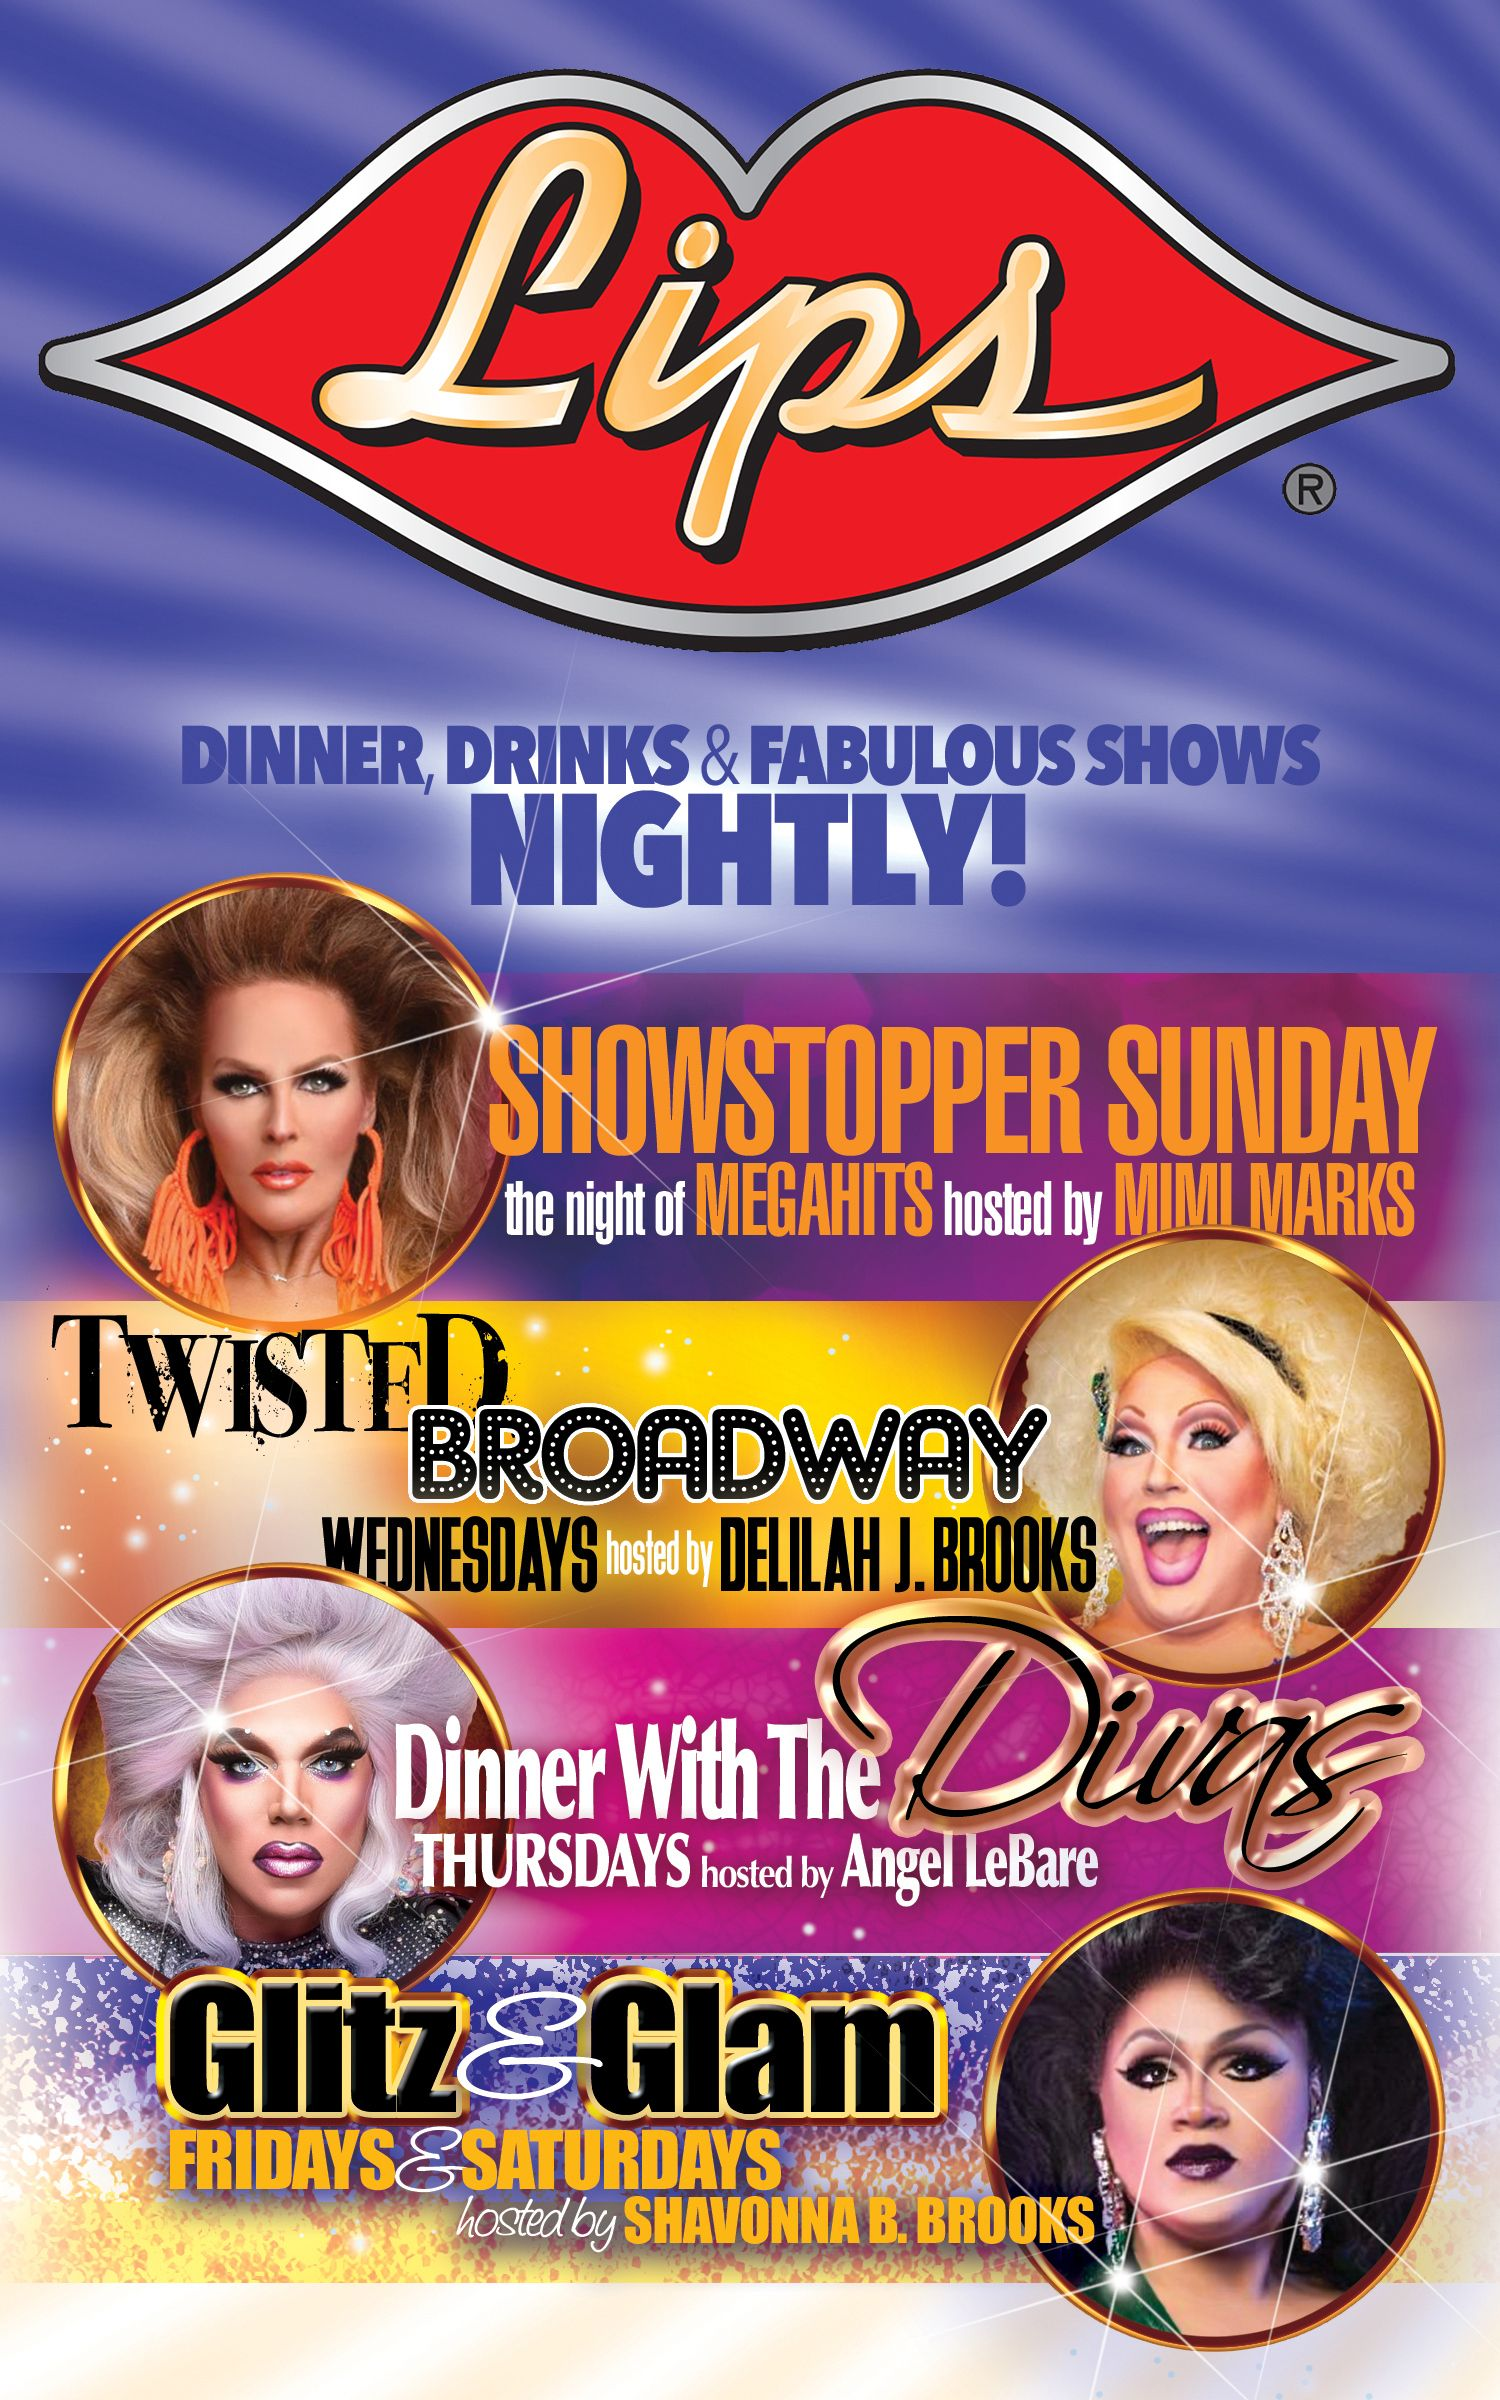 We have a full week at Lips Chicago!  #lipschicago #chicagoloop #dragshow # dragqueen #drag #mccormickplace #dinnershow #chitown #broadwayinchicago